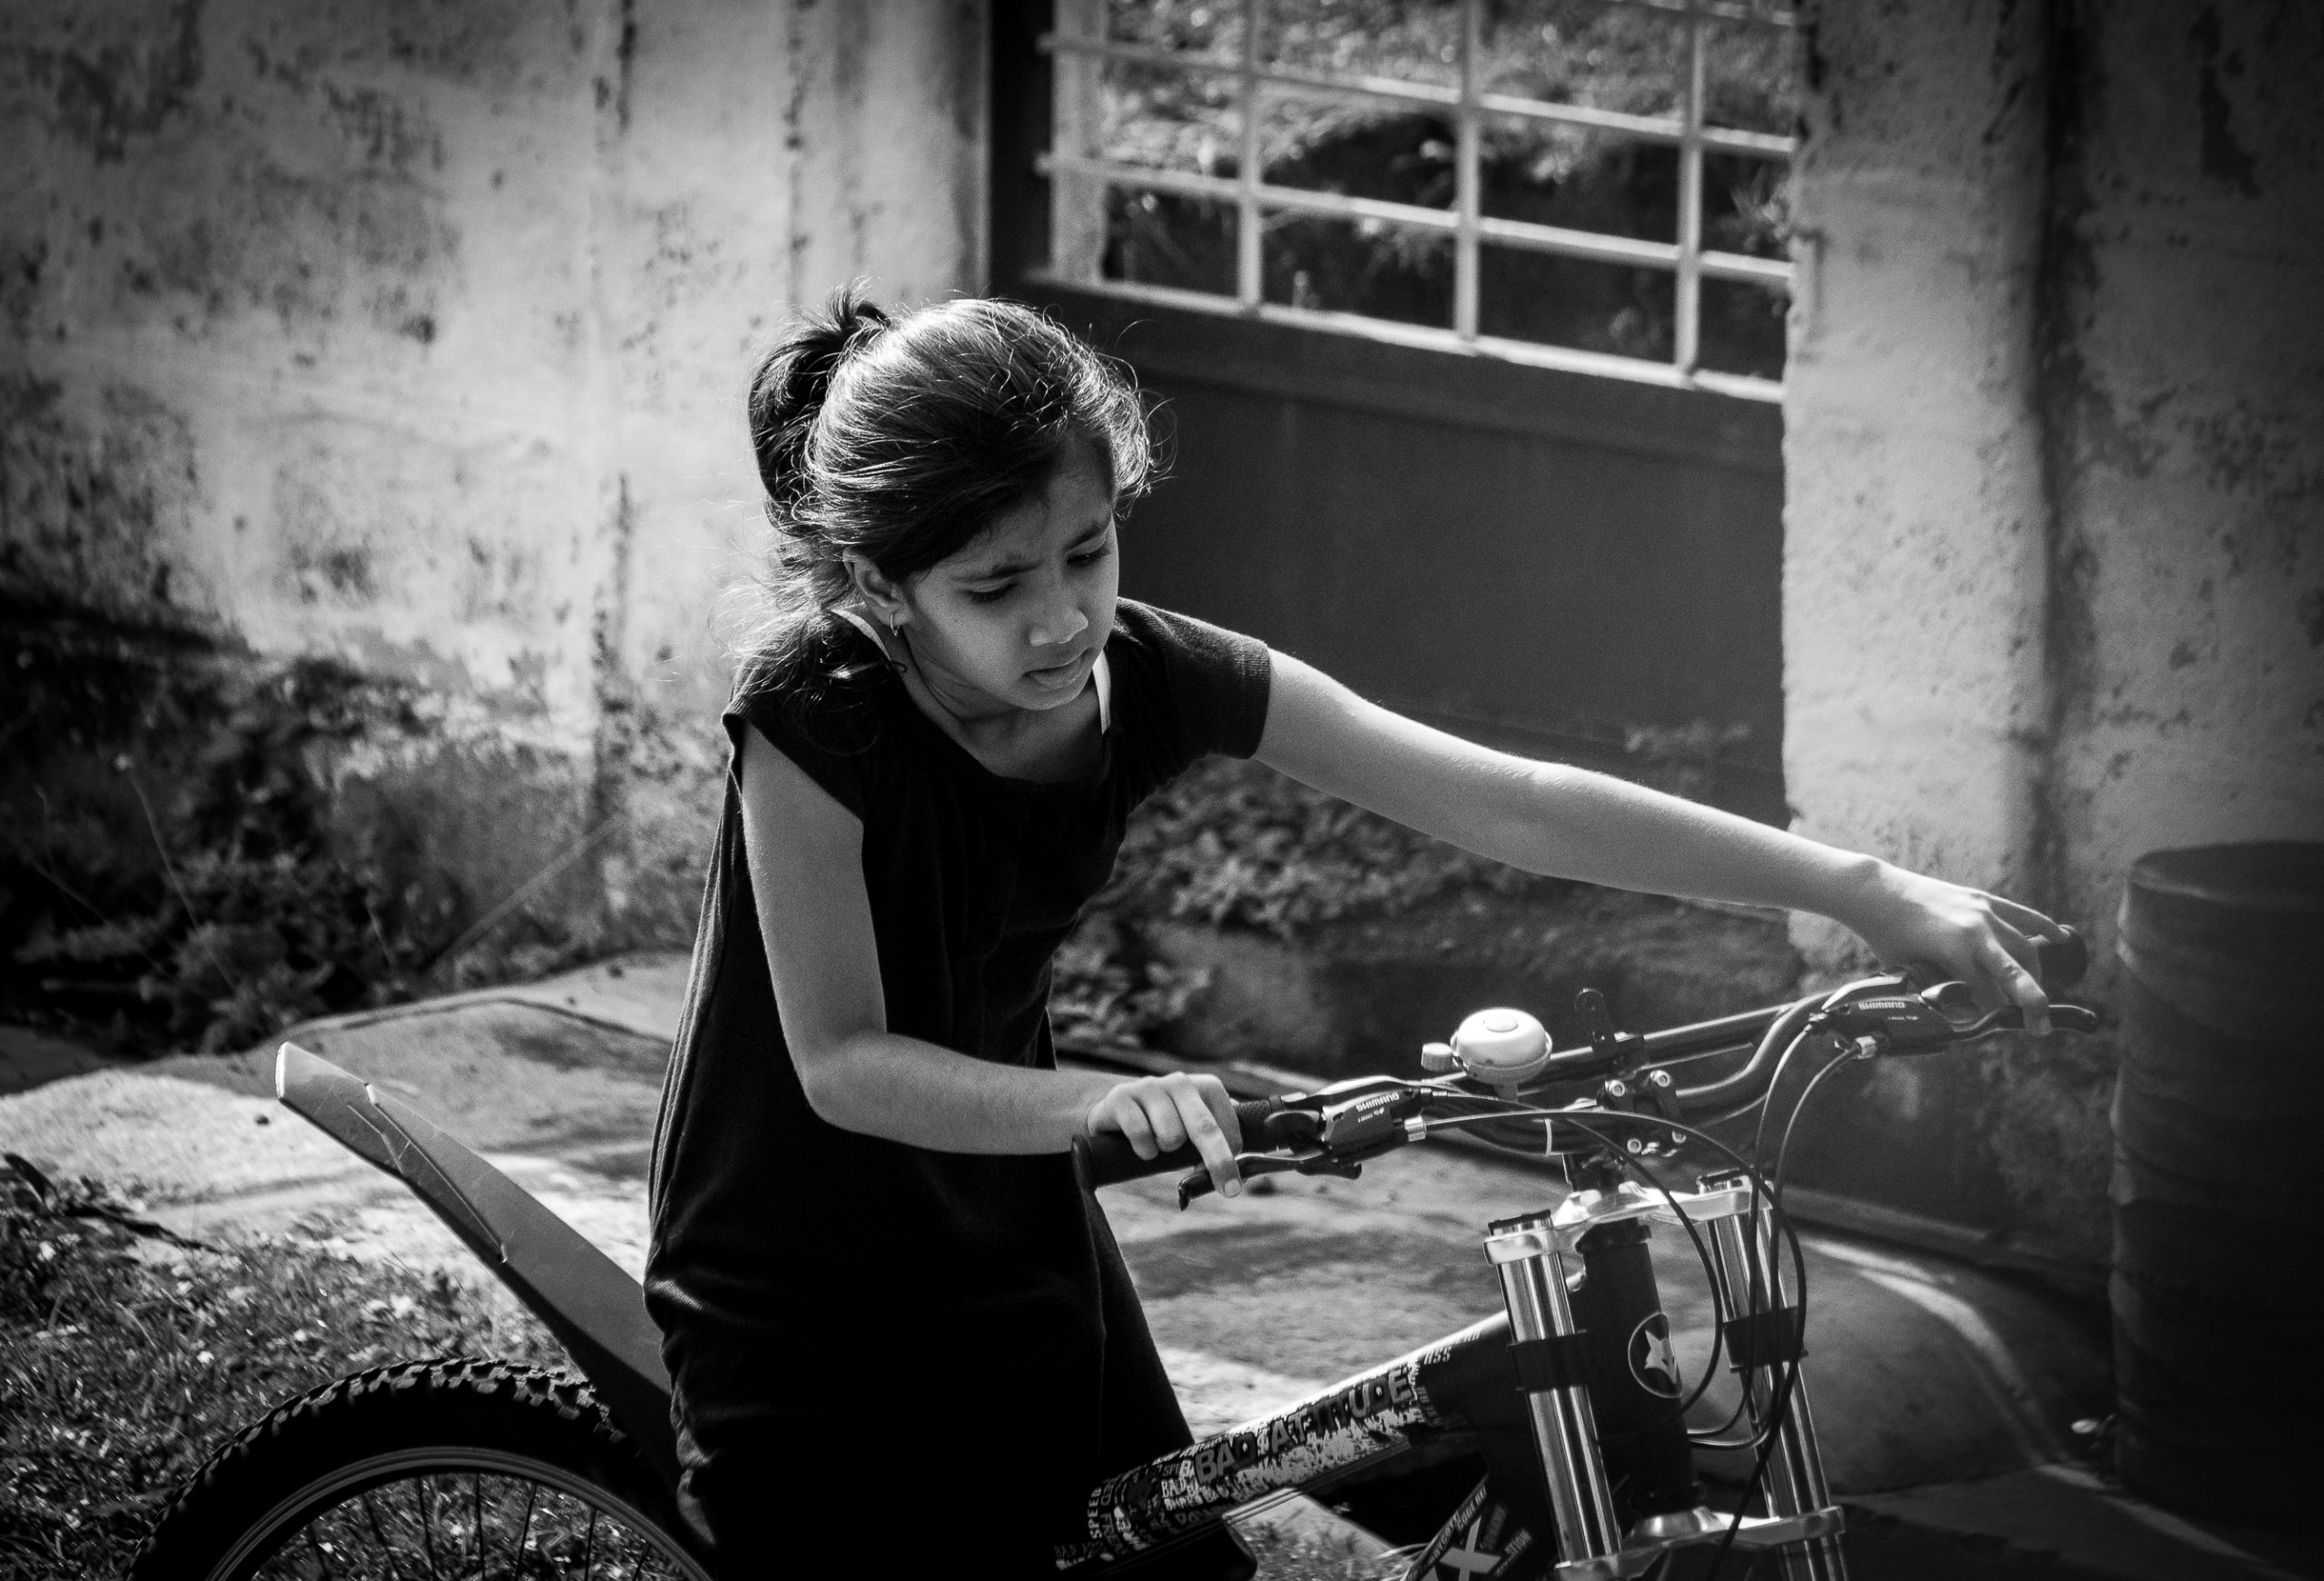 A little girl on a bicycle